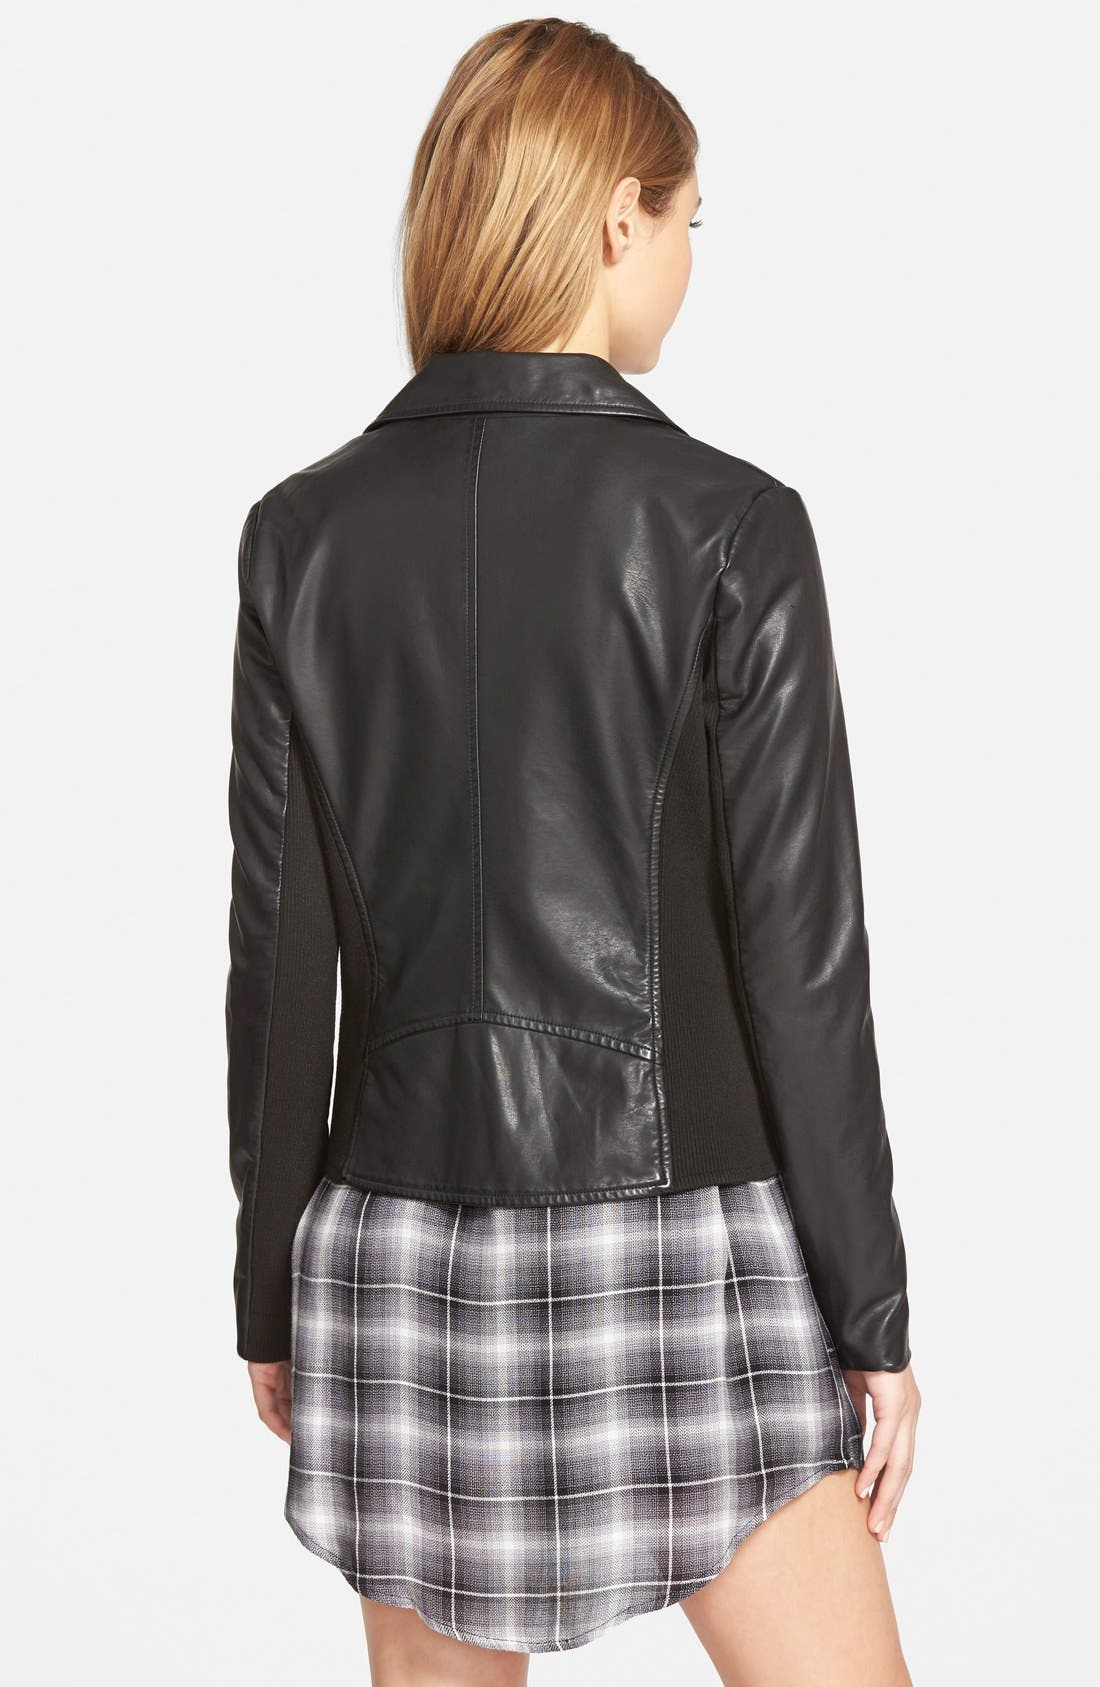 CUPCAKES AND CASHMERE,                             'Union' Faux Leather Biker Jacket,                             Alternate thumbnail 3, color,                             001